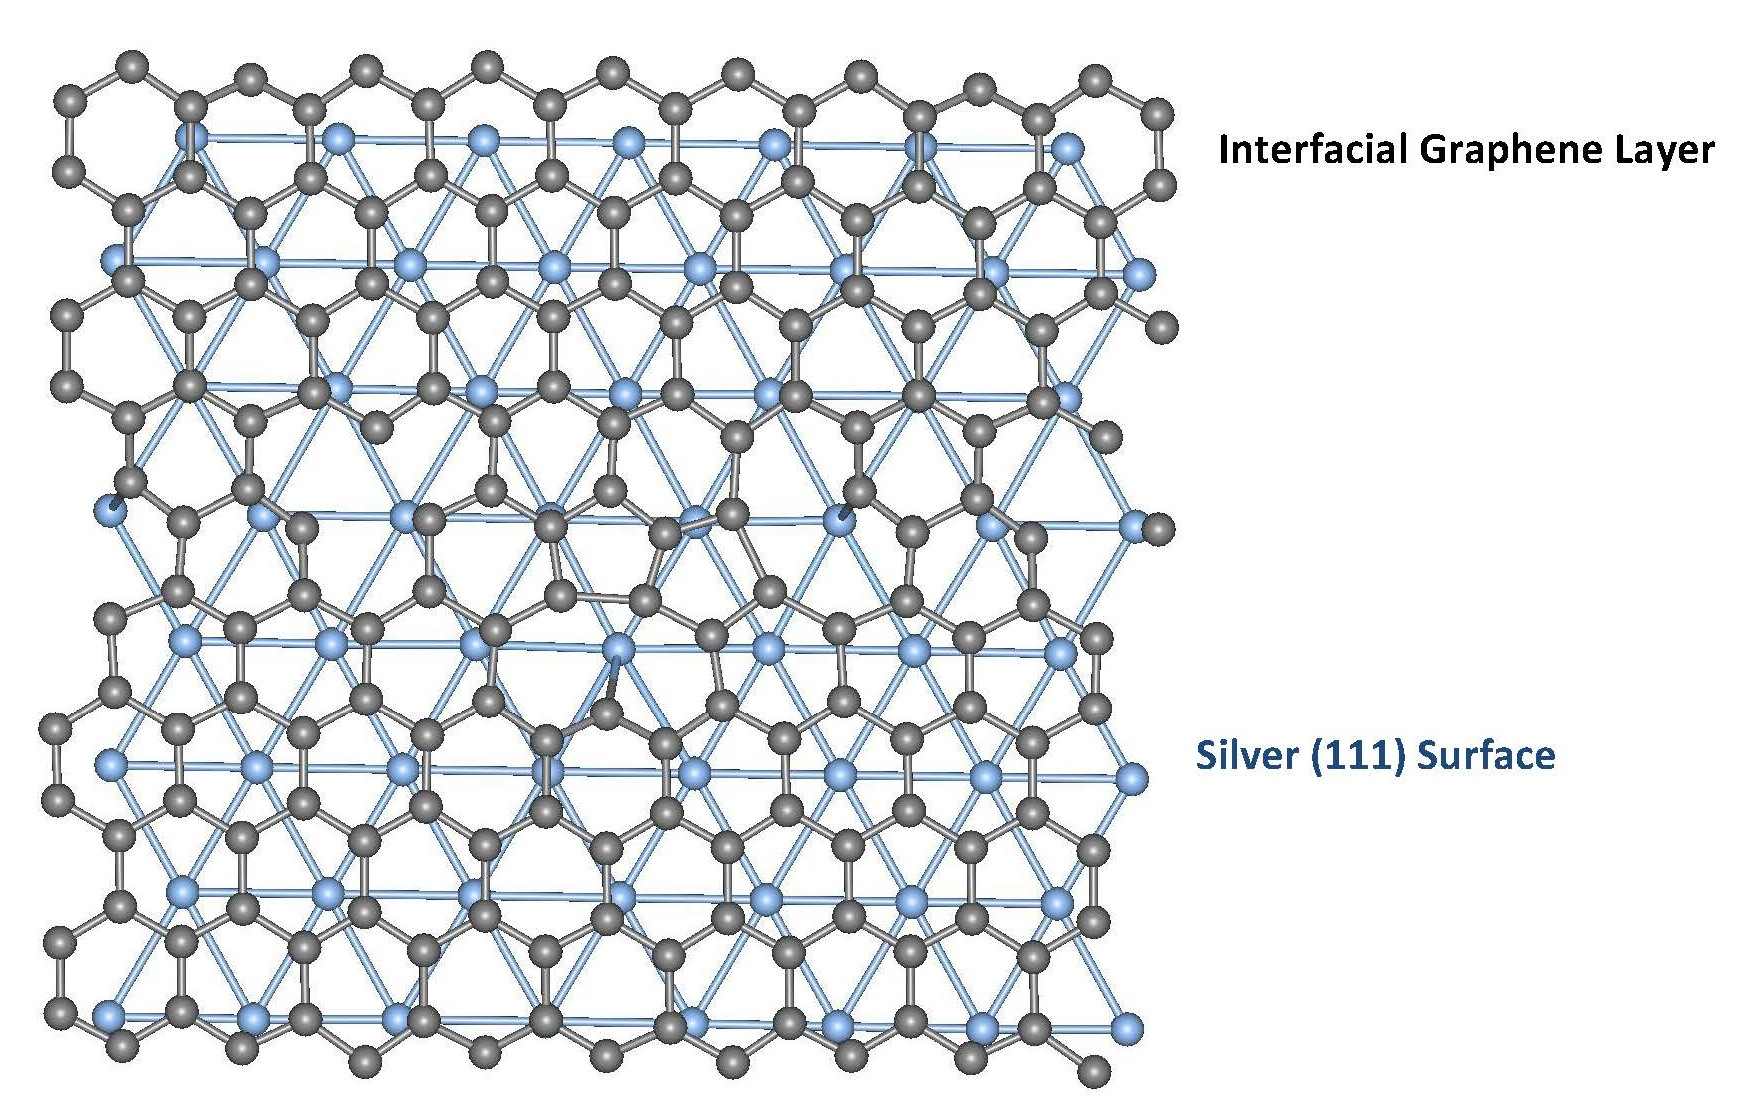 Image: Graphene layer over silver atomic planes.